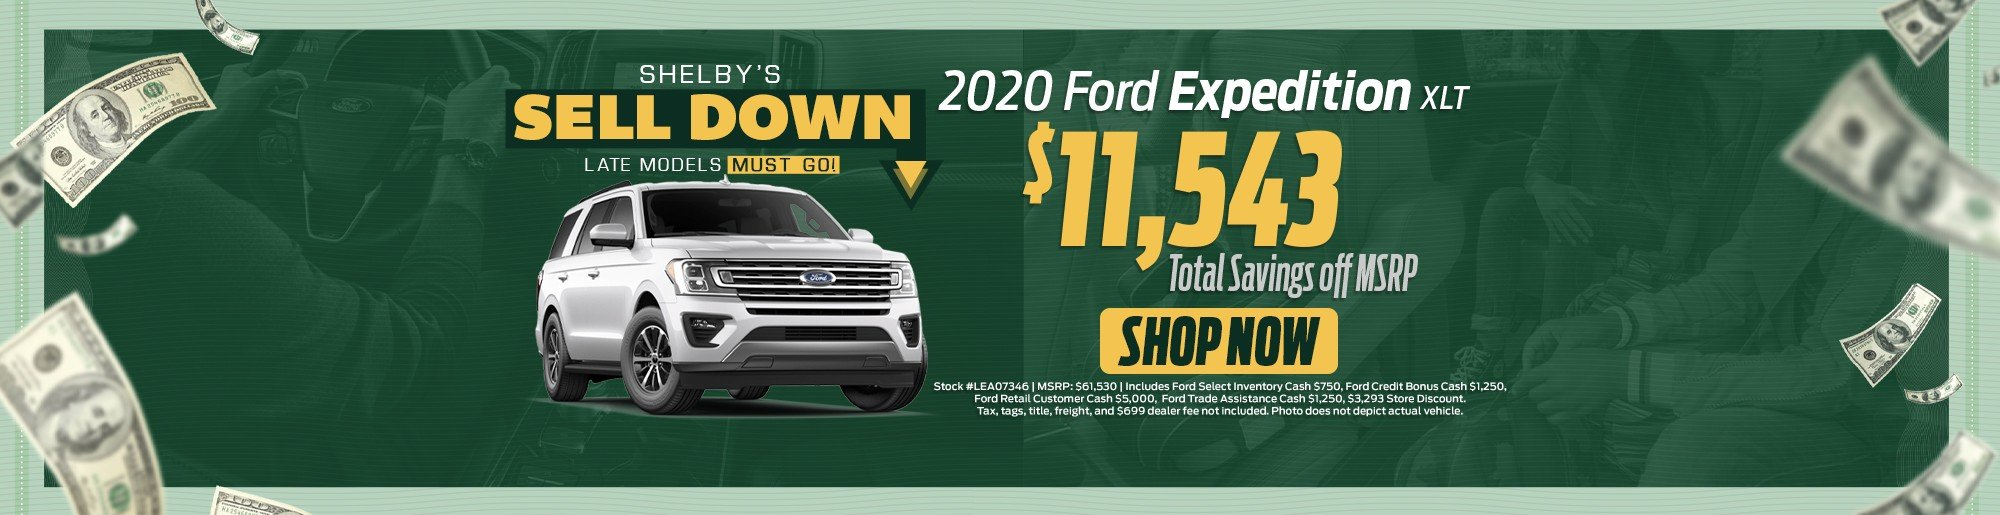 Ford Expedition deals near me, Key Scales FL